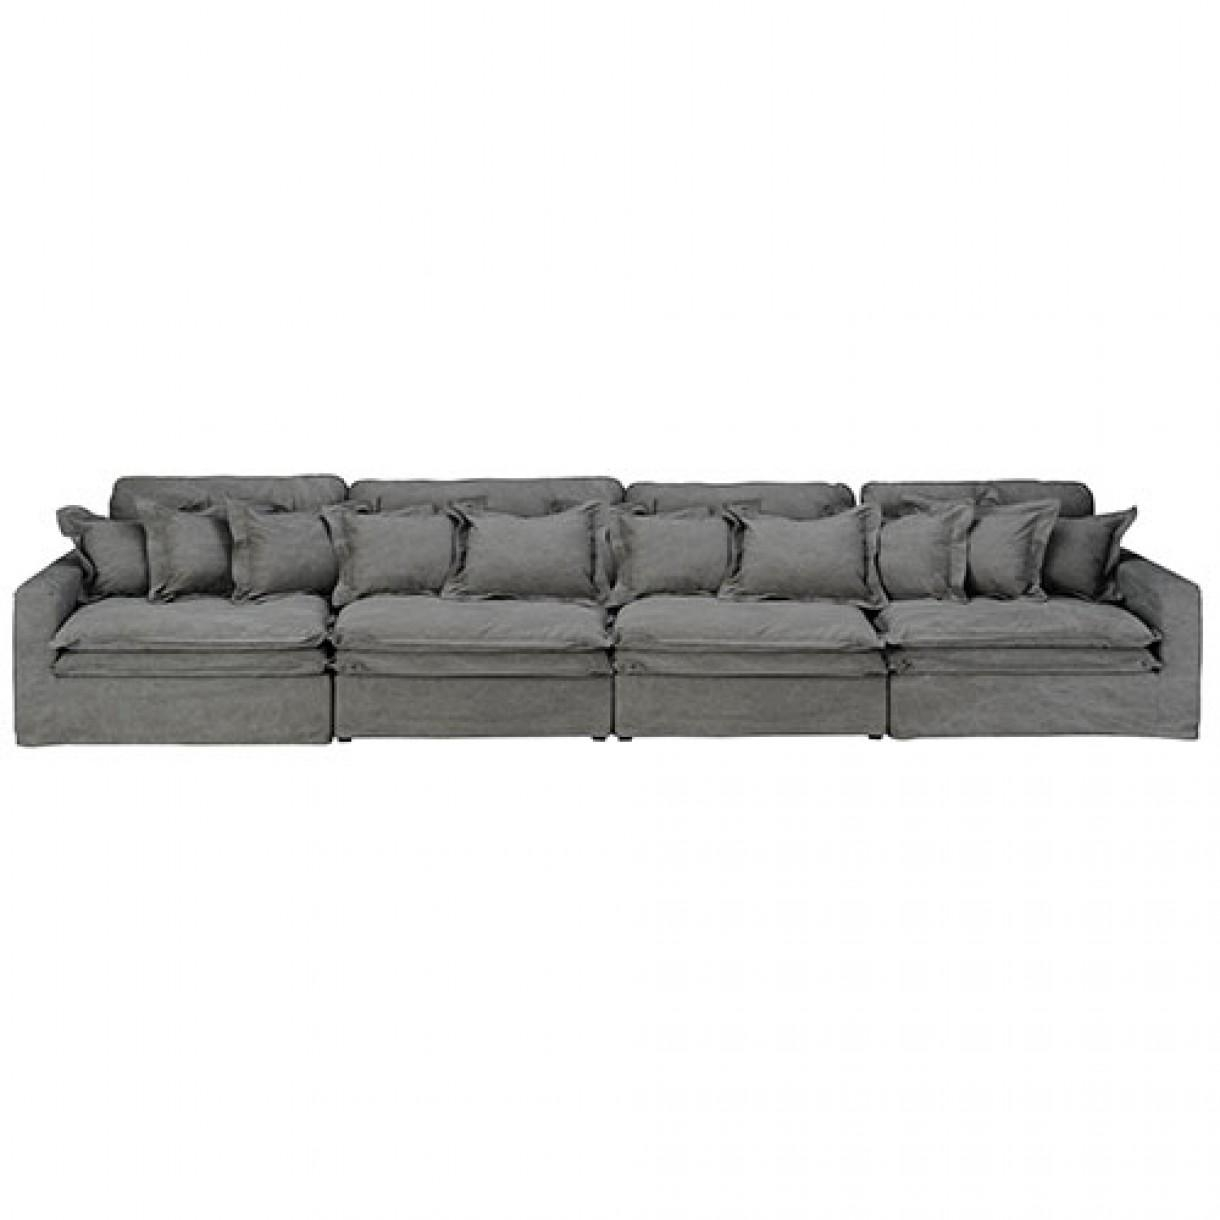 4 Seater Sofa Vintage Grey Cotton intended for Four Seat Sofas